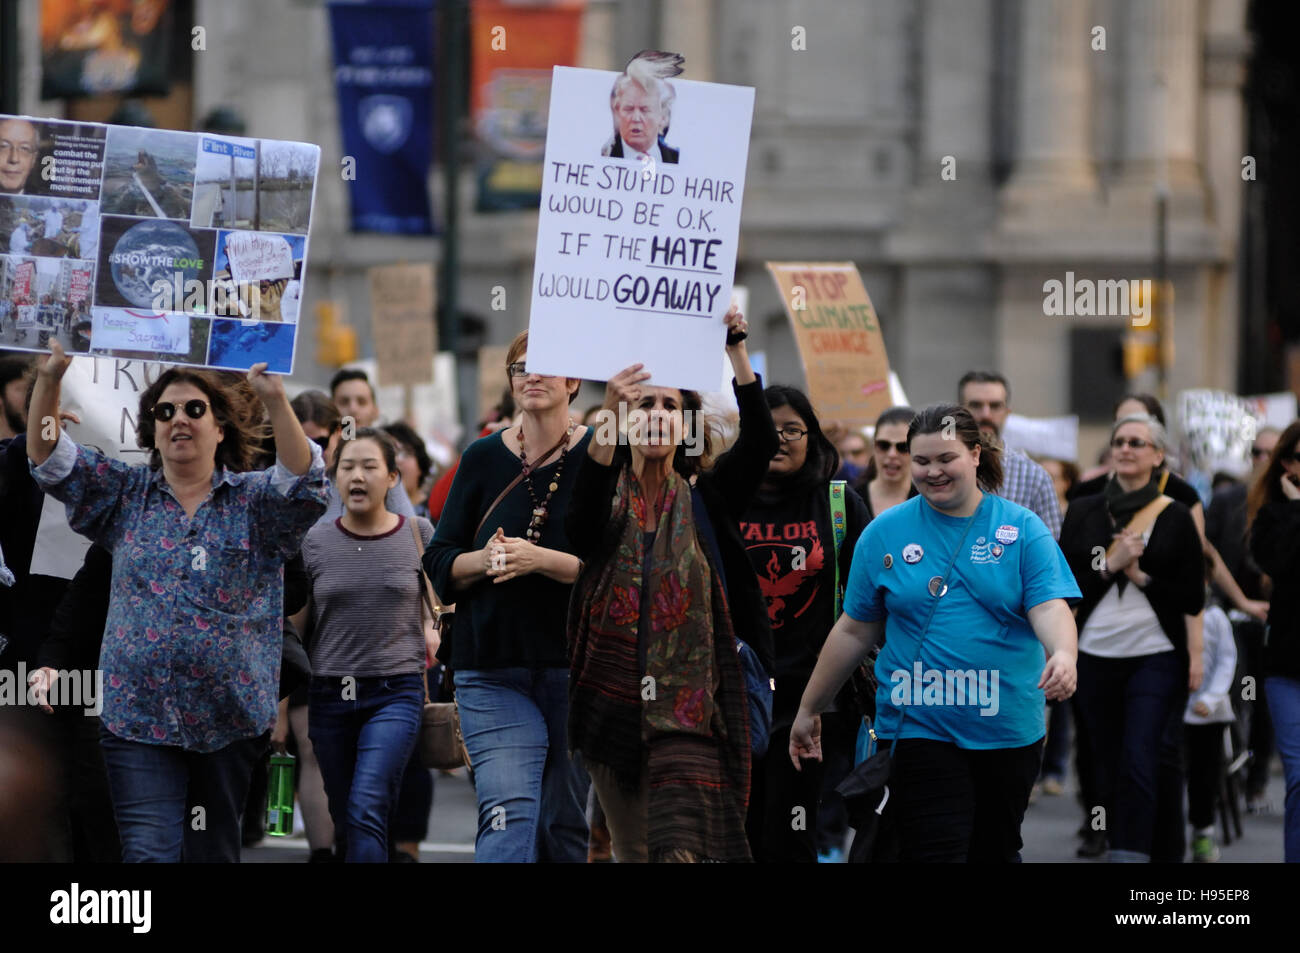 Philadelphia, Pennsylvania, USA. 19th November, 2016. Protesters carry signs as they march on Market St. during - Stock Image